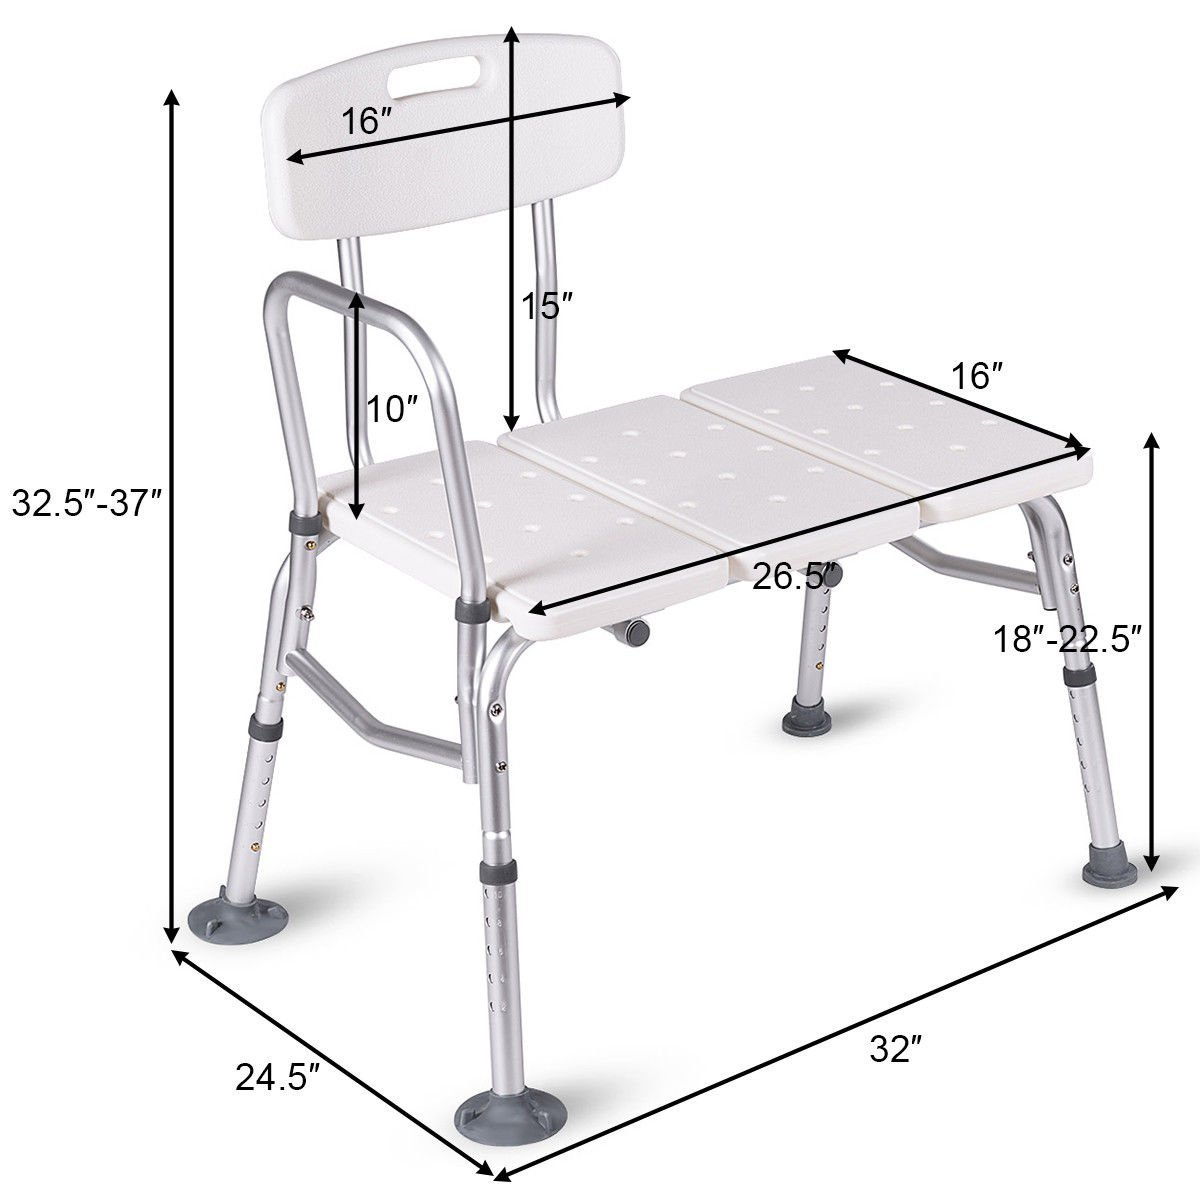 Giantex Shower Bath Seat Medical Adjustable Bathroom Bath Tub ...